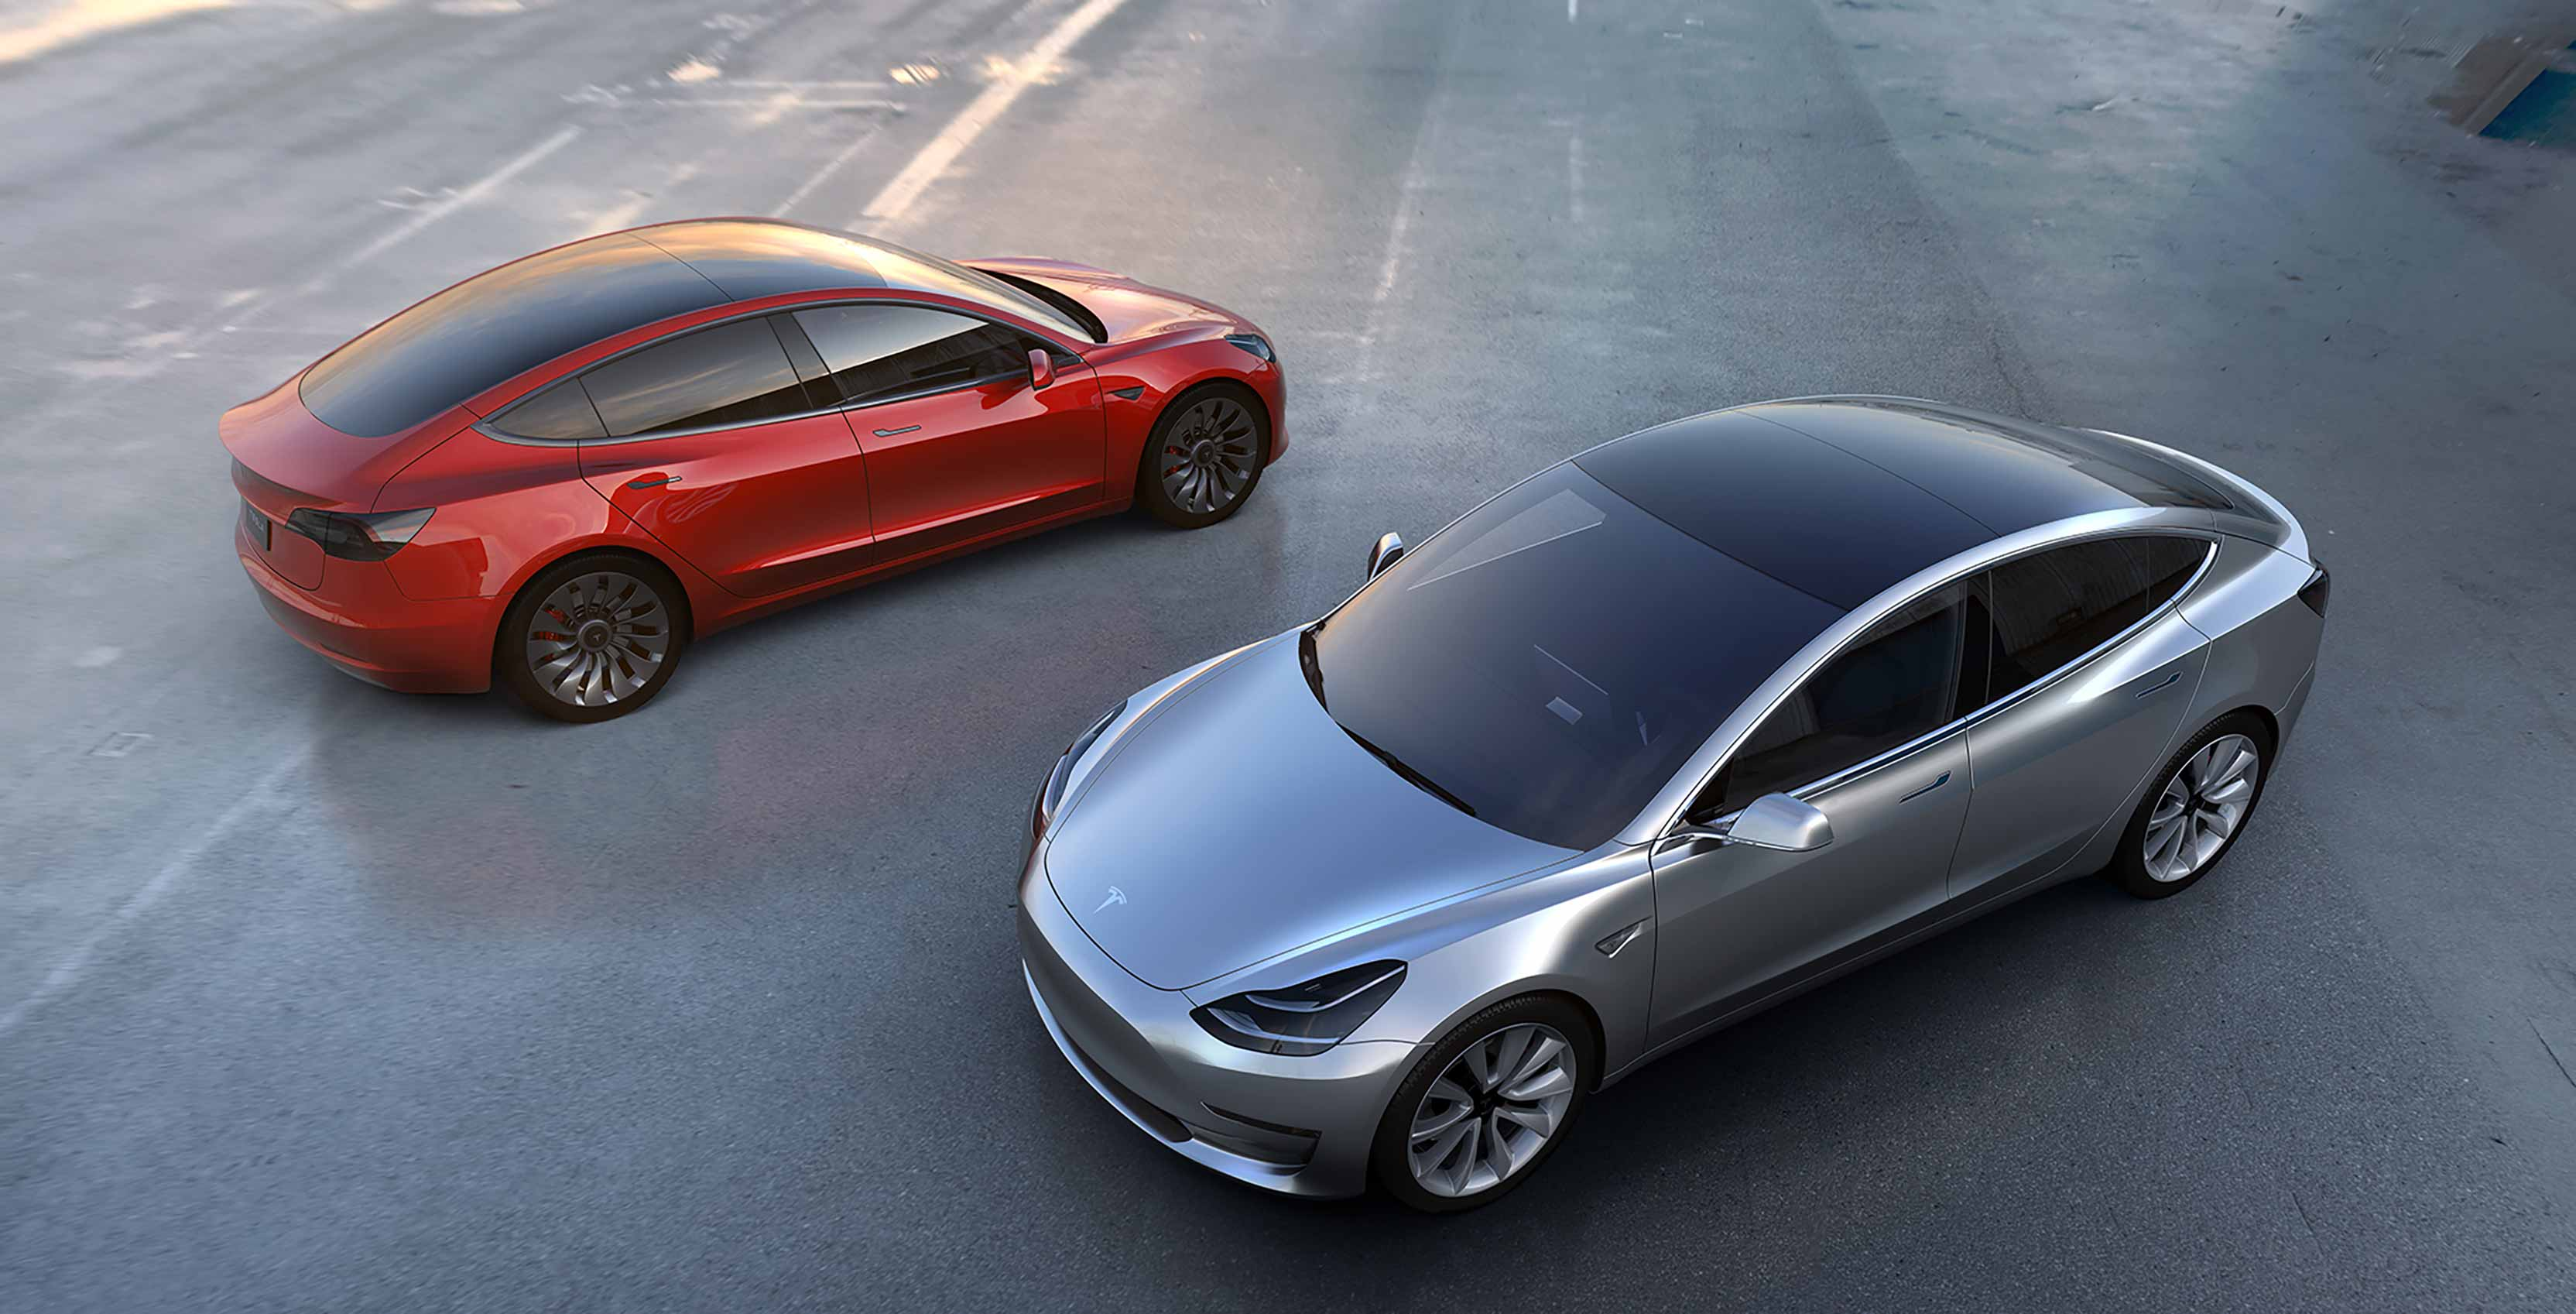 U S Based Electric Vehicle Manufacturer Tesla Has Won Its Lawsuit Against The Ontario Government Regarding Province Decision To Cancel